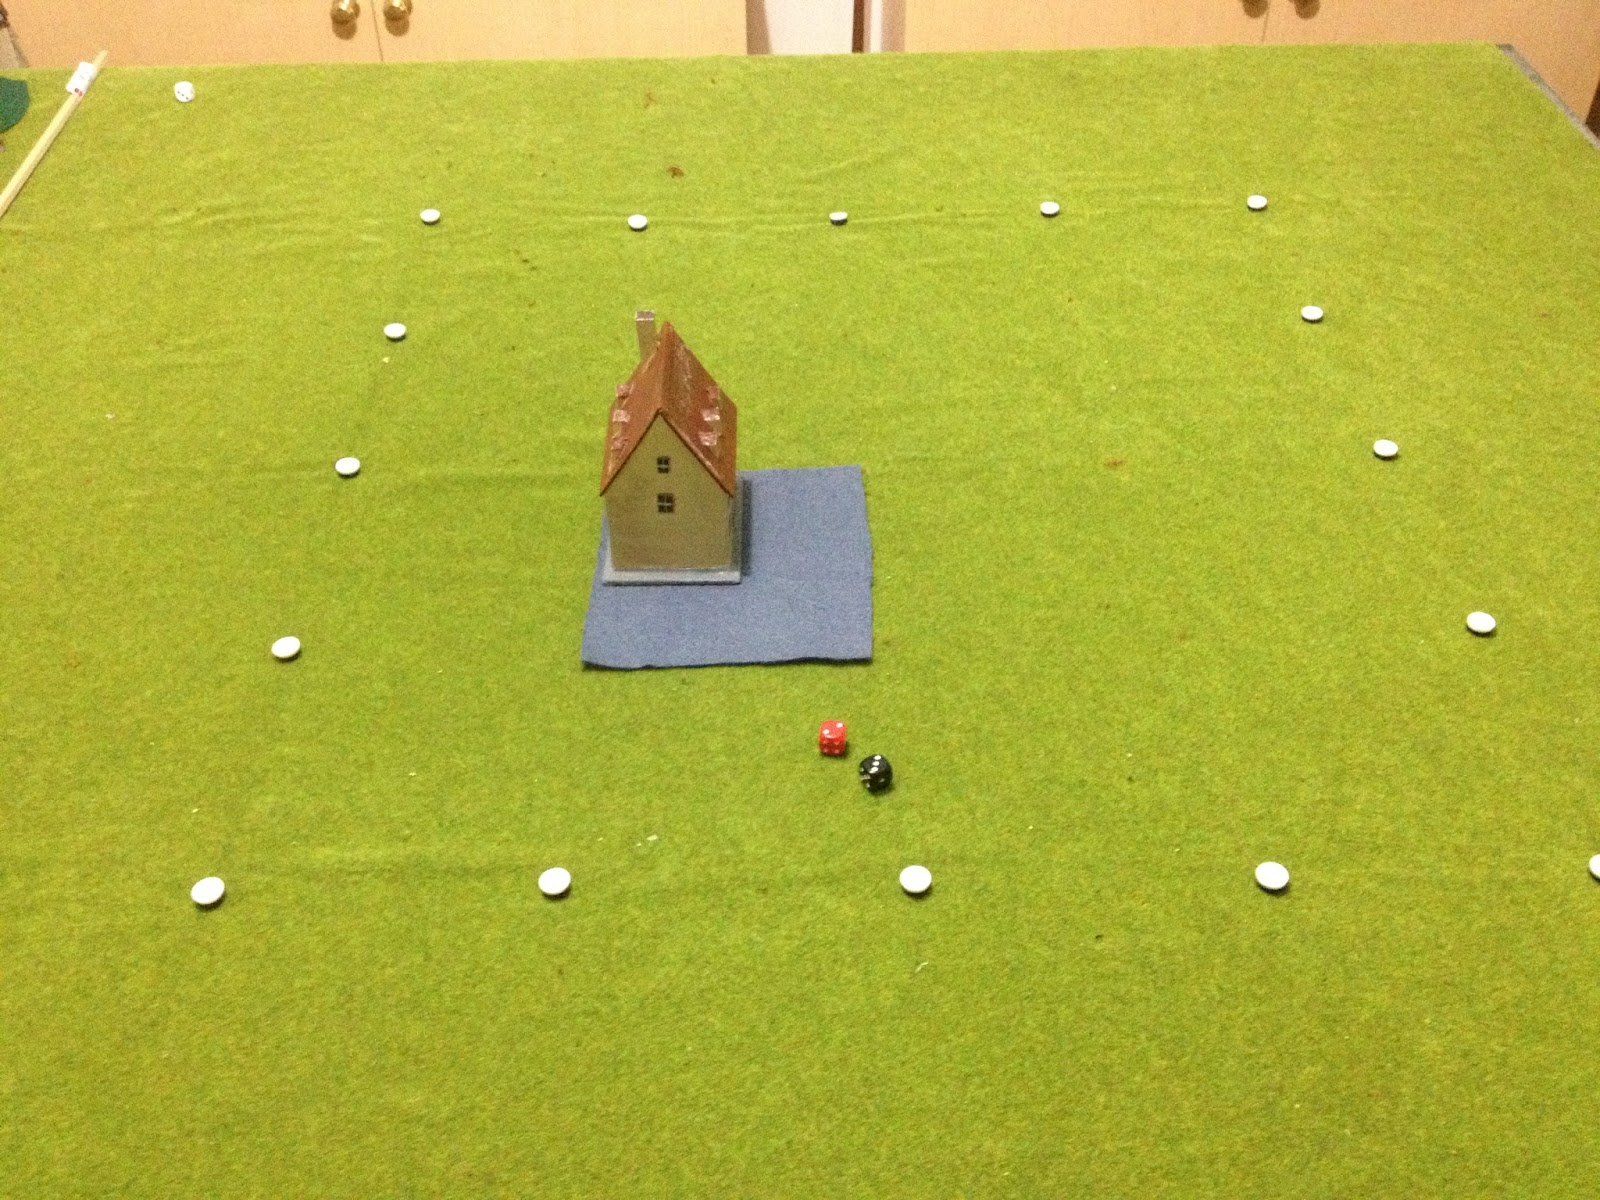 Grid based wargaming - but not always: WW2 mini-campaign rules part 4